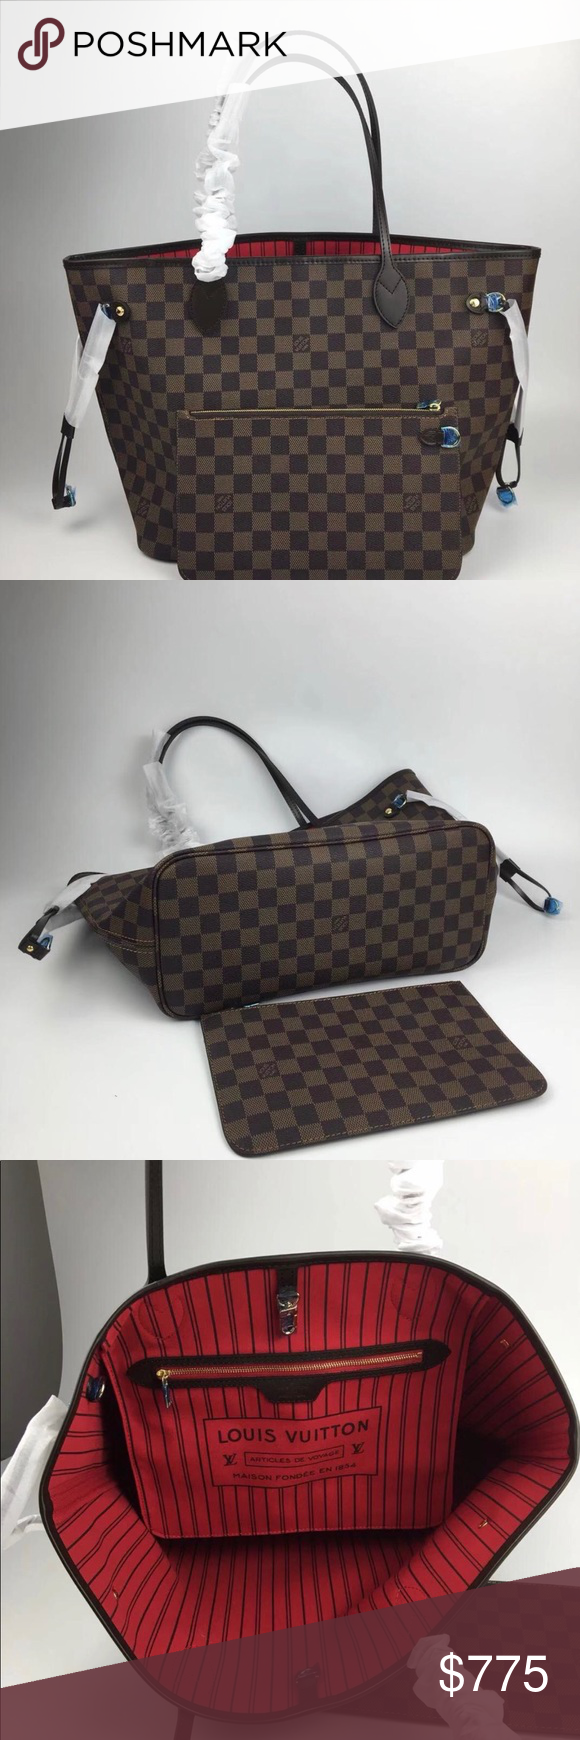 Louis Vuitton Neverfull Mm Mm Size And Lining 32 X 29 X 17 Cm Red Lining Bags Totes Louis Vuitton Neverfull Mm Louis Vuitton Bags